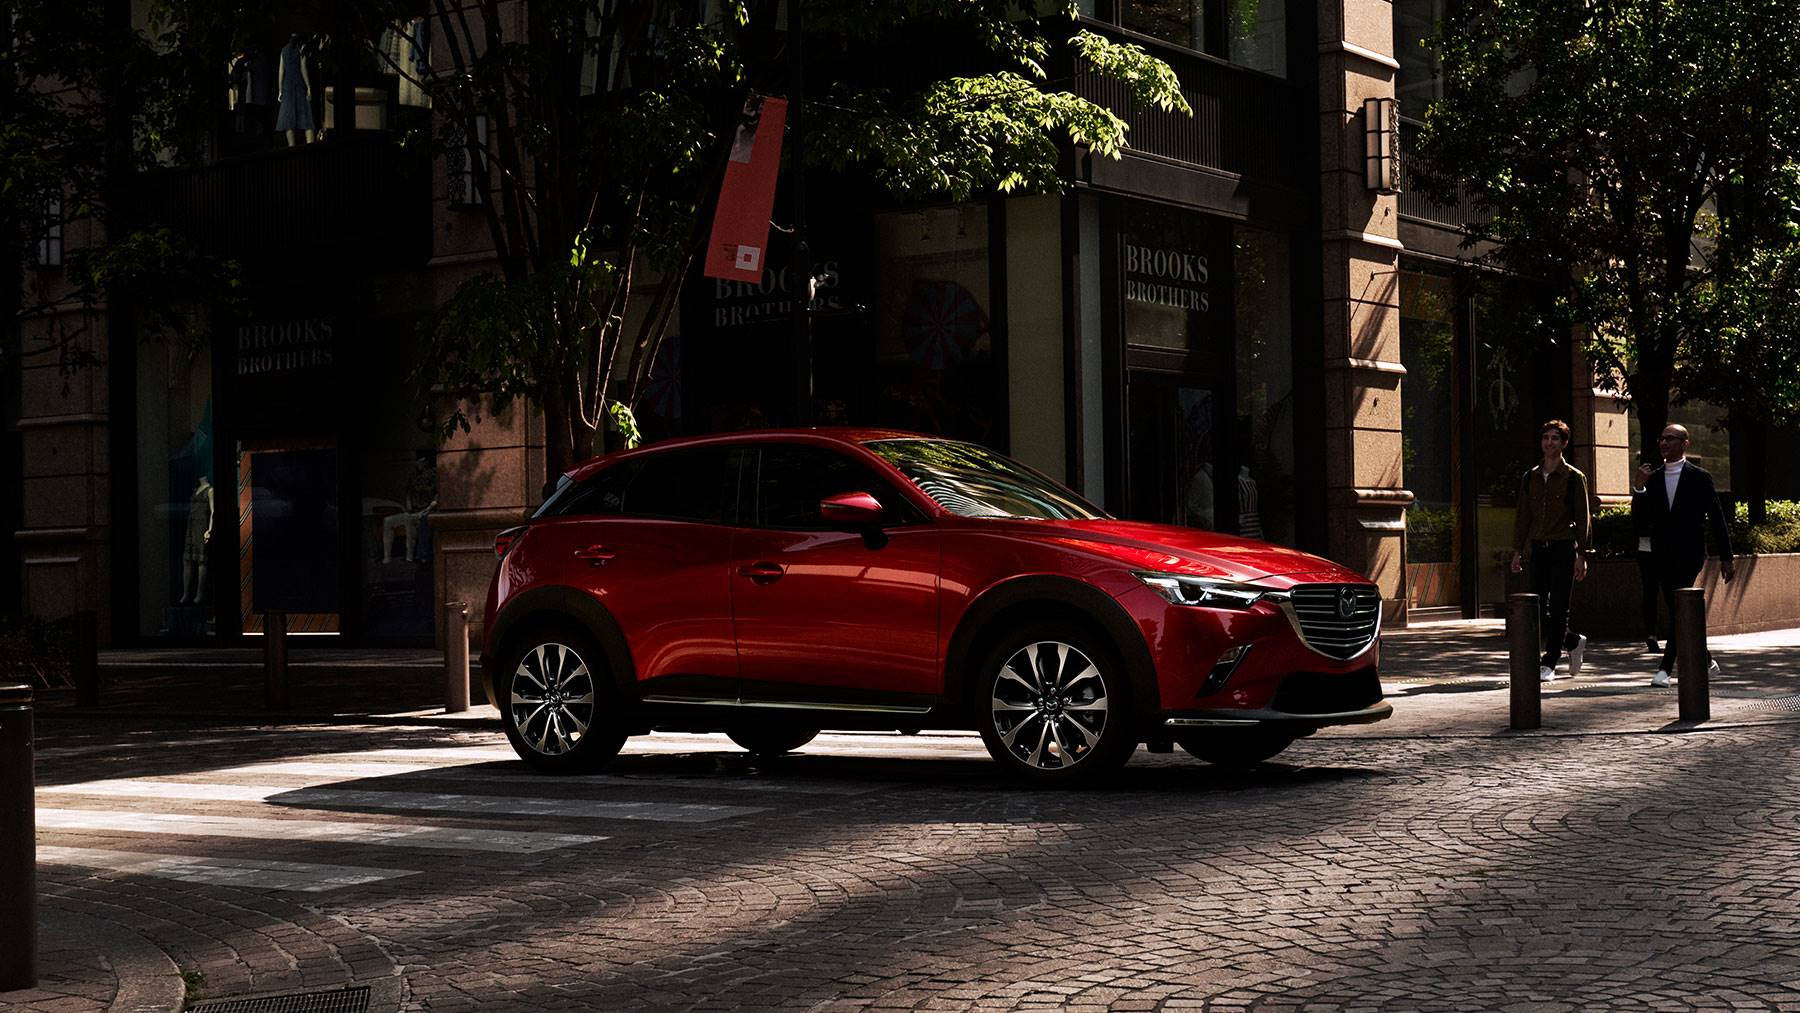 2019 Mazda CX-3 Leasing near New Braunfels, TX